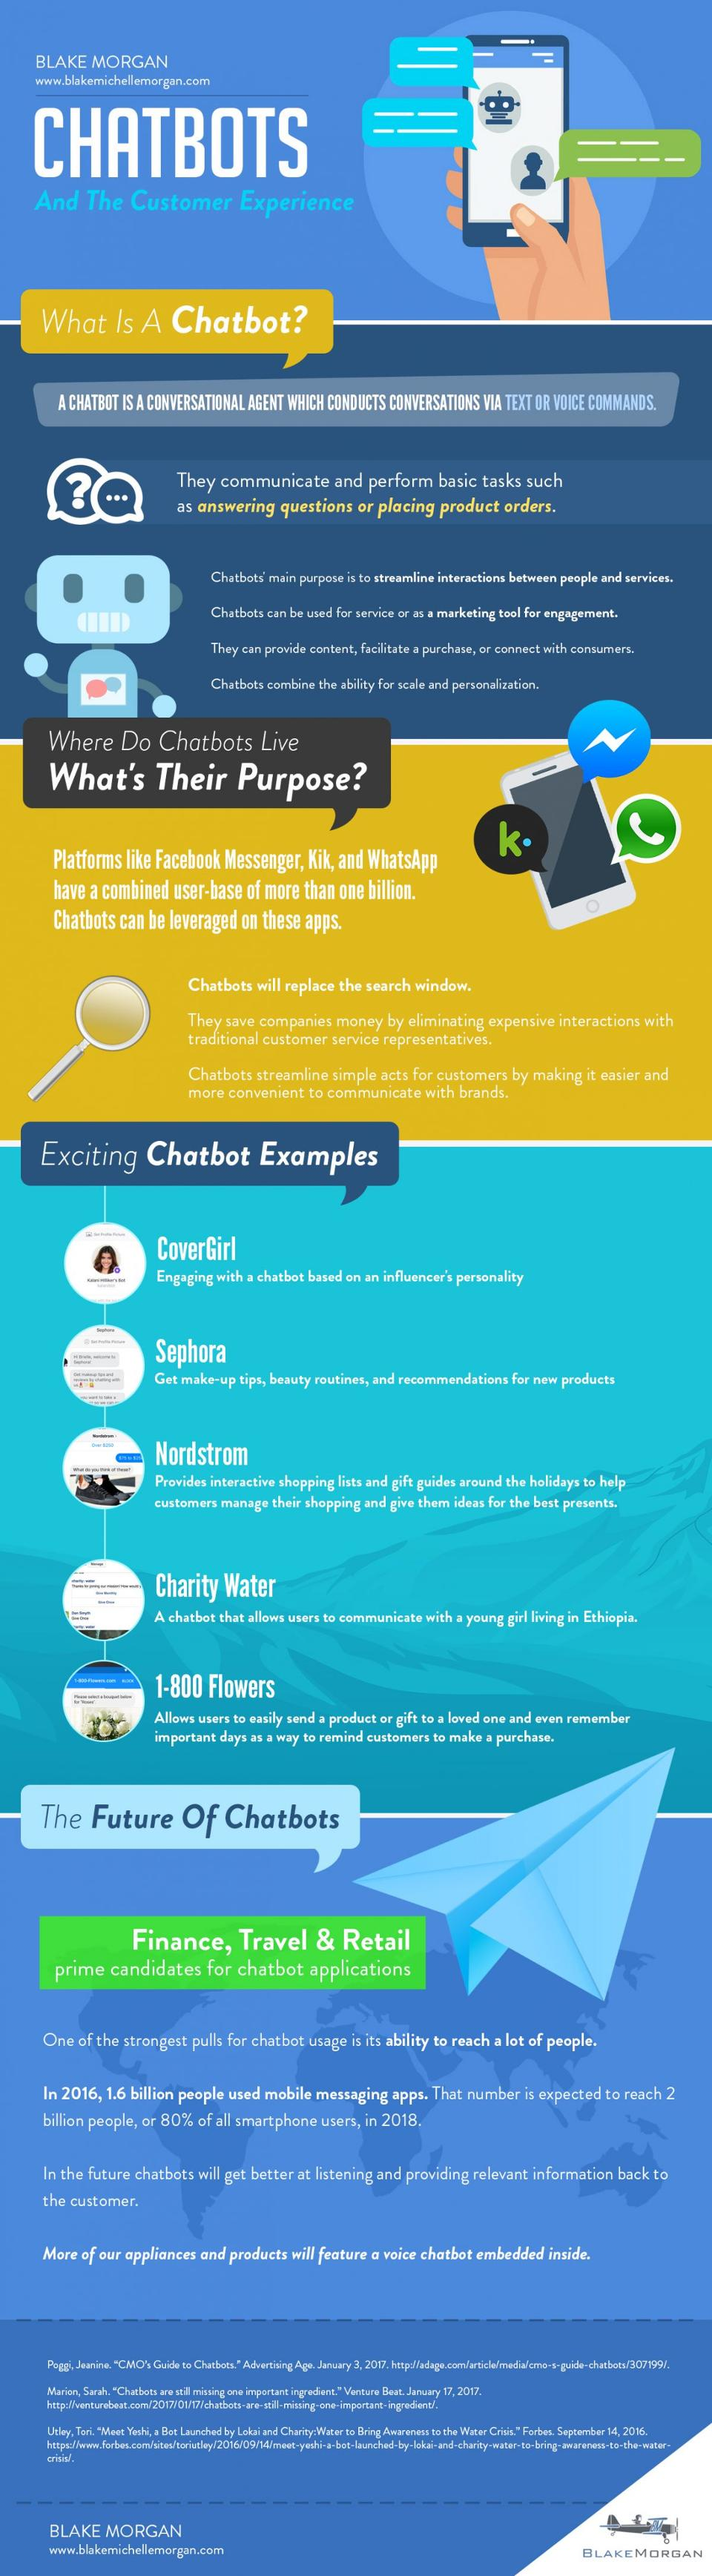 chat bots infographic